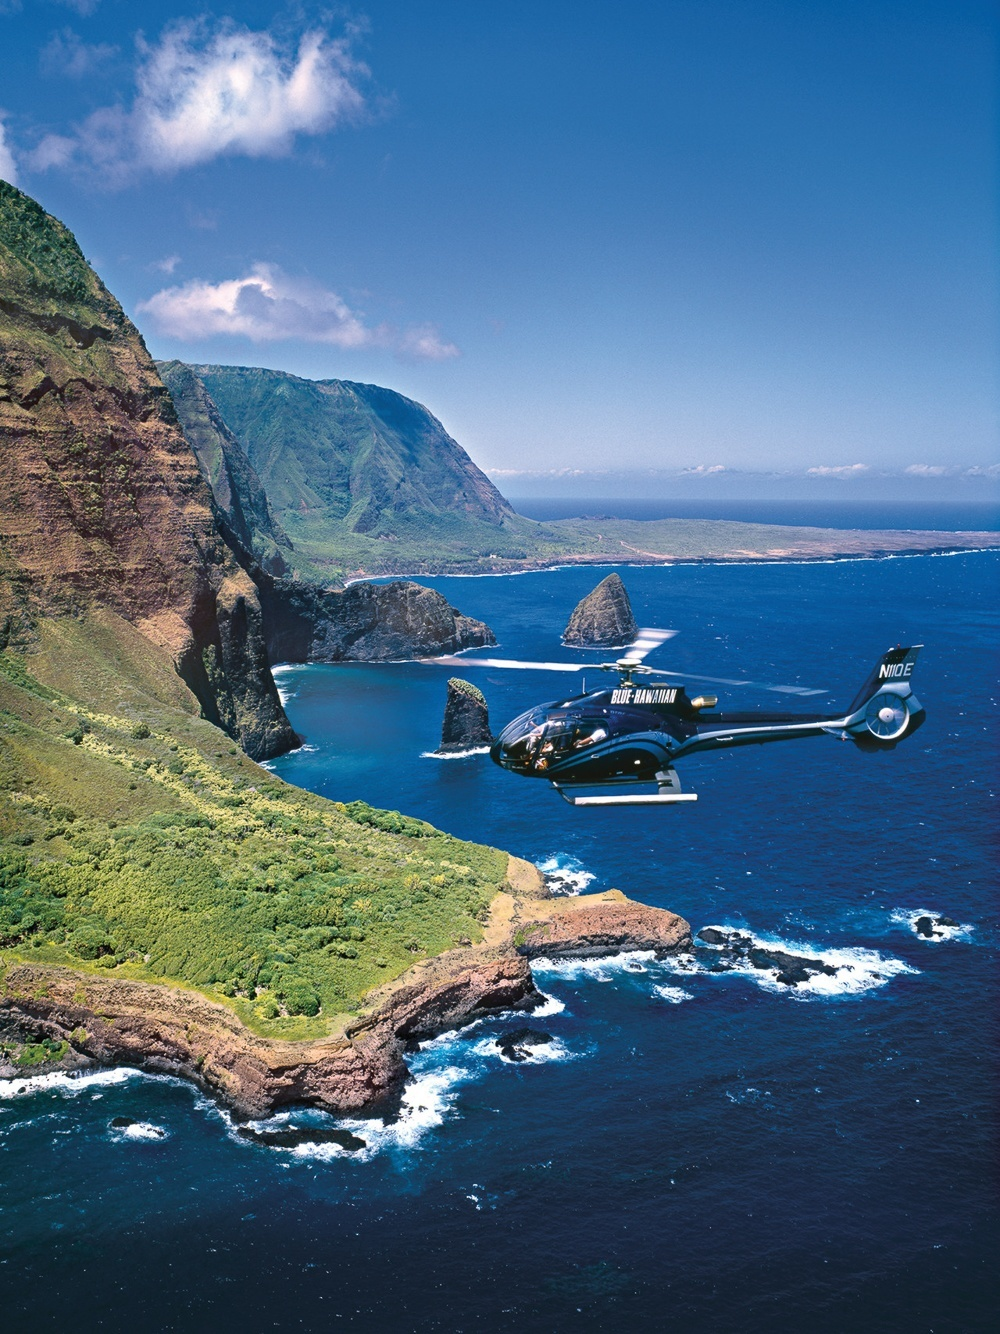 Take a spectacular Maui island helicopter tour during your next Hawaii vacation